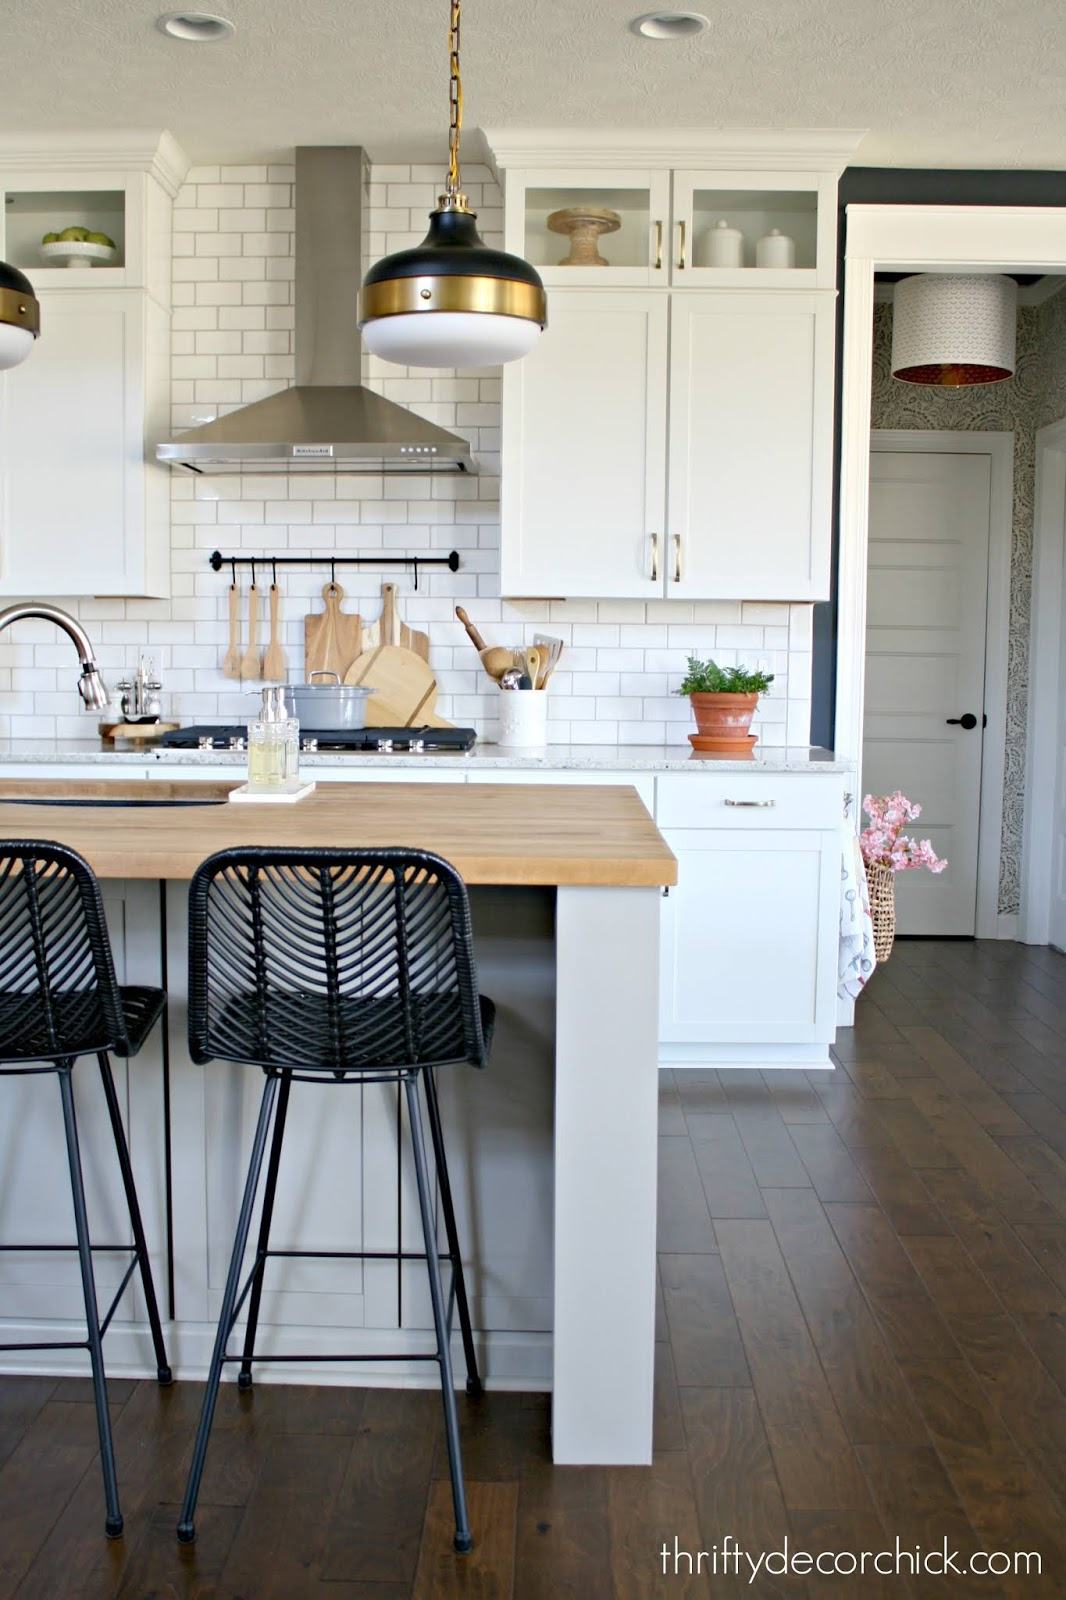 Light gray island, white kitchen cabinets, black stools